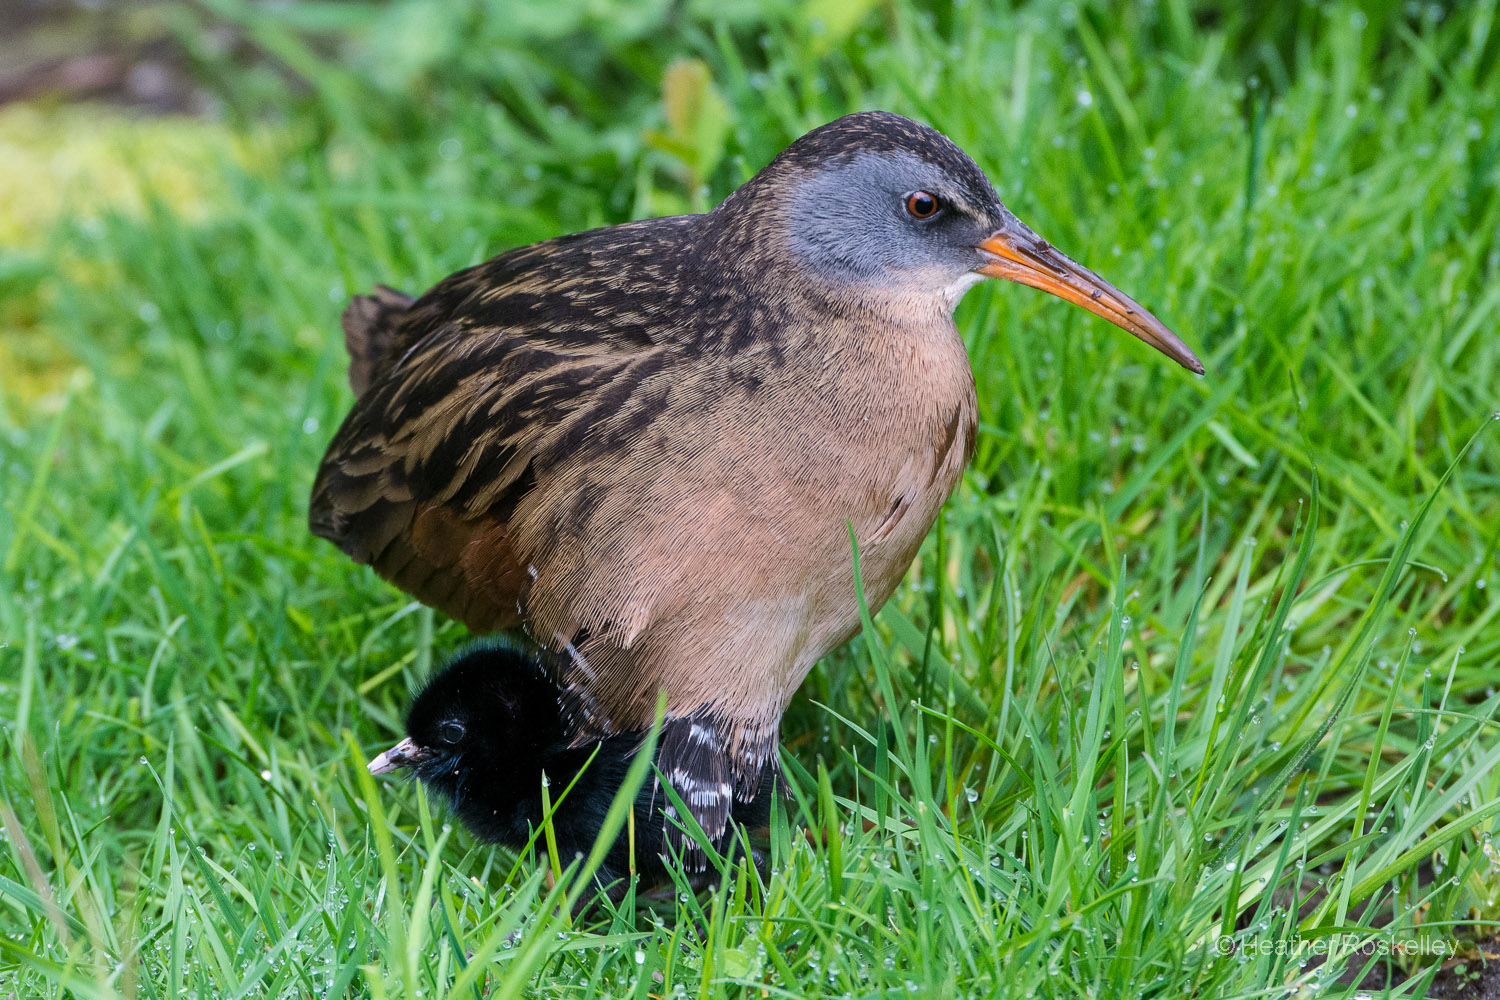 A downy black chick emerged from beneath the Virginia Rail mom.